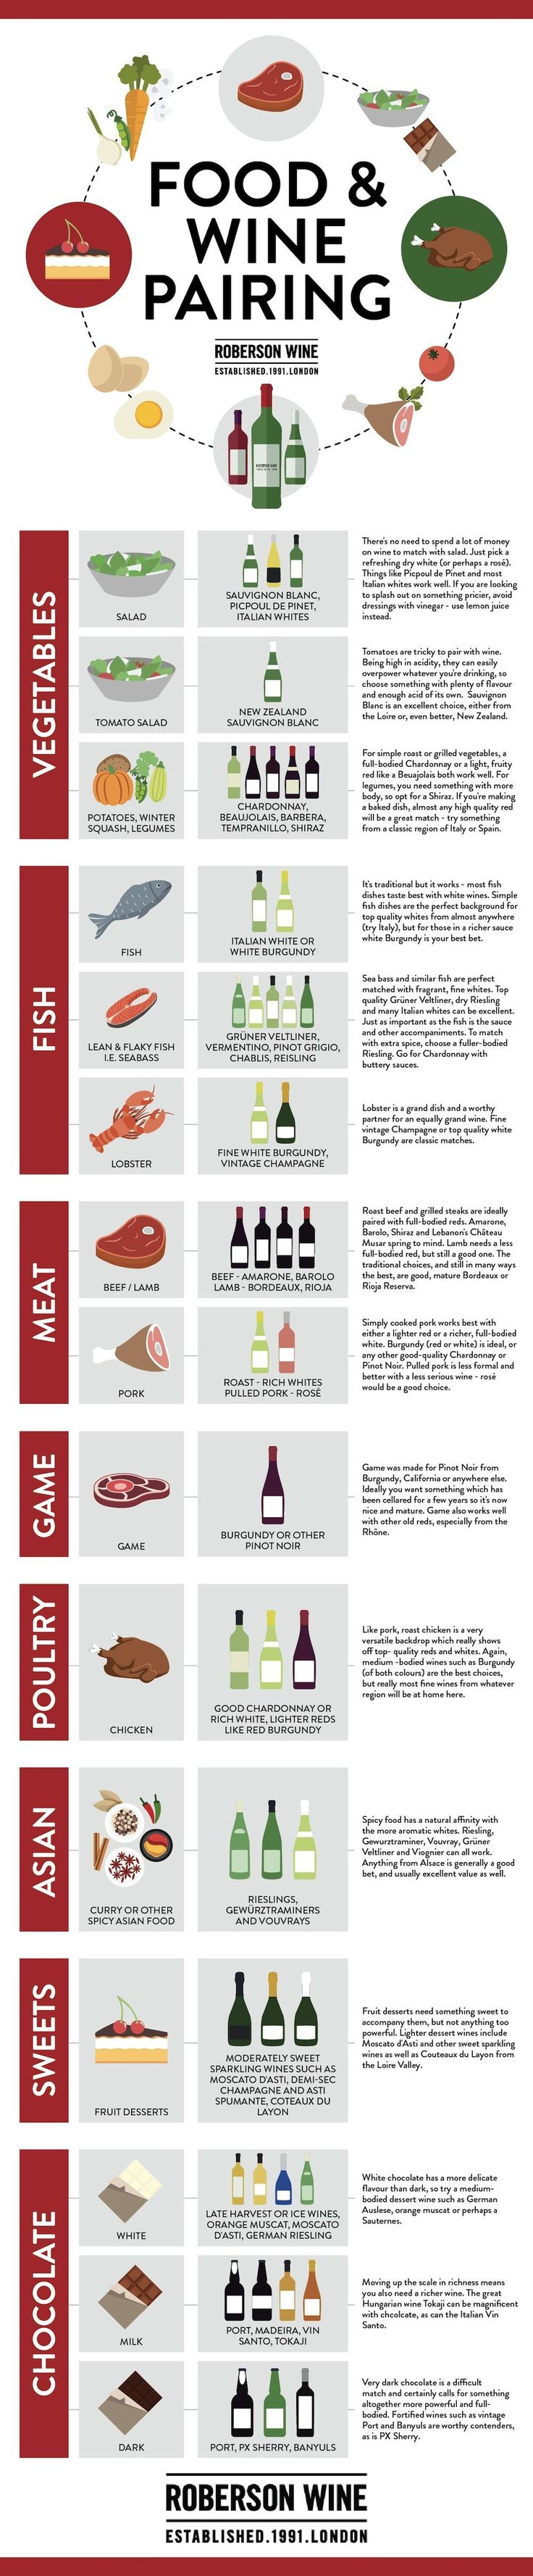 Food and wine pairings                                                                                                                                                                                 More